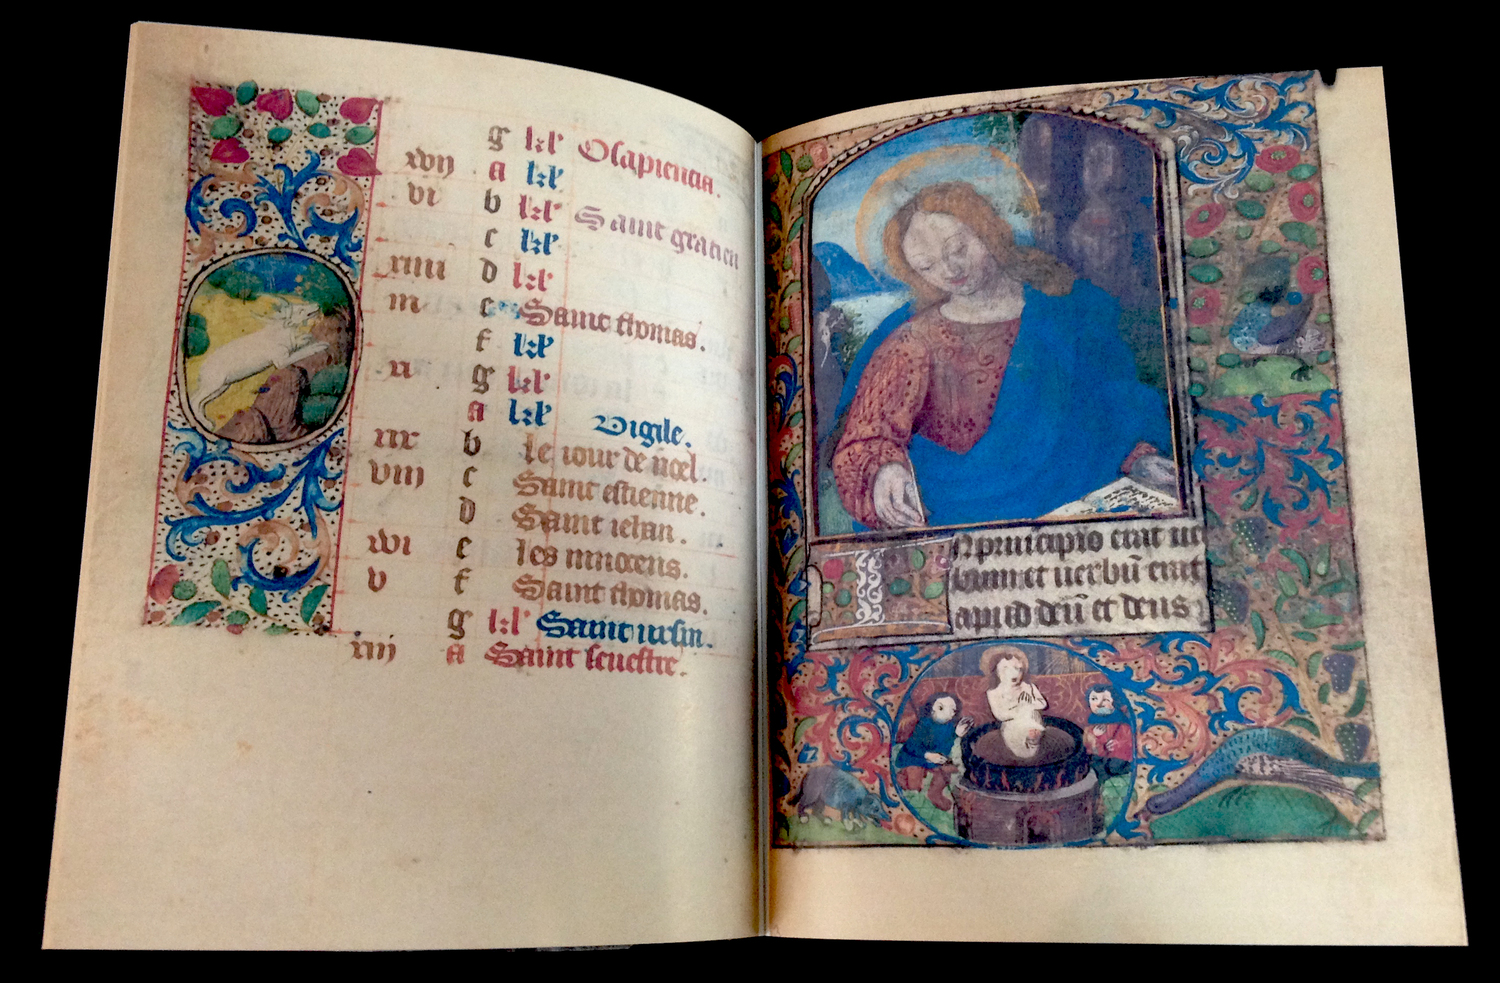 BOOK OF HOURS USE OF ORLÉANS, 1490